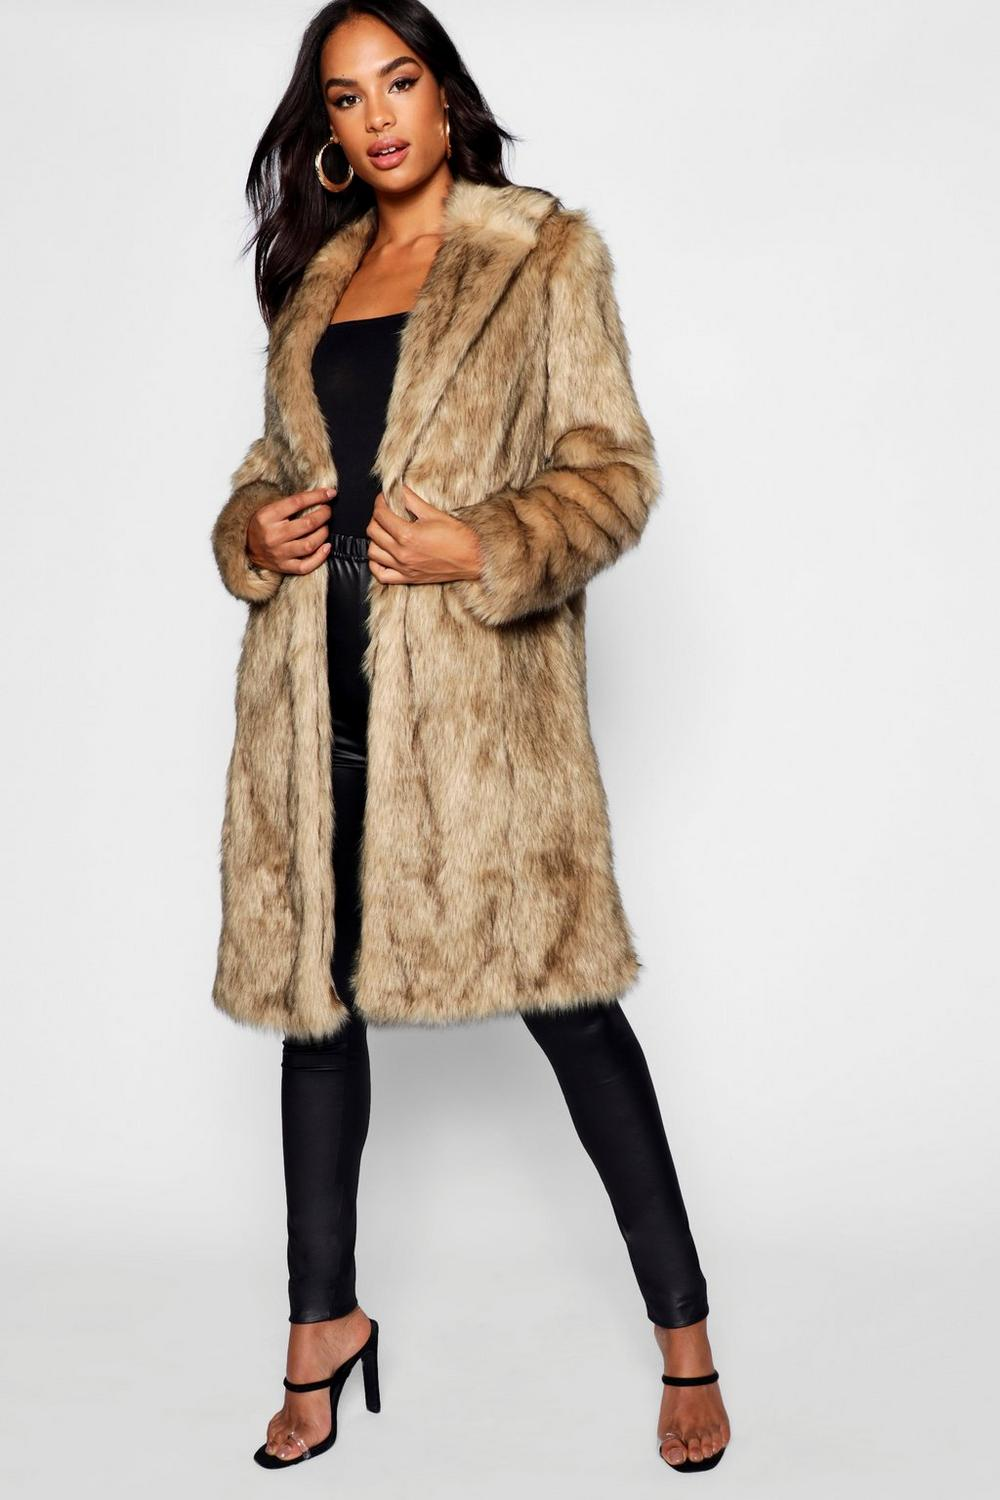 latest style of 2019 latest trends of 2019 affordable price Tall Faux Fur Coat | Boohoo